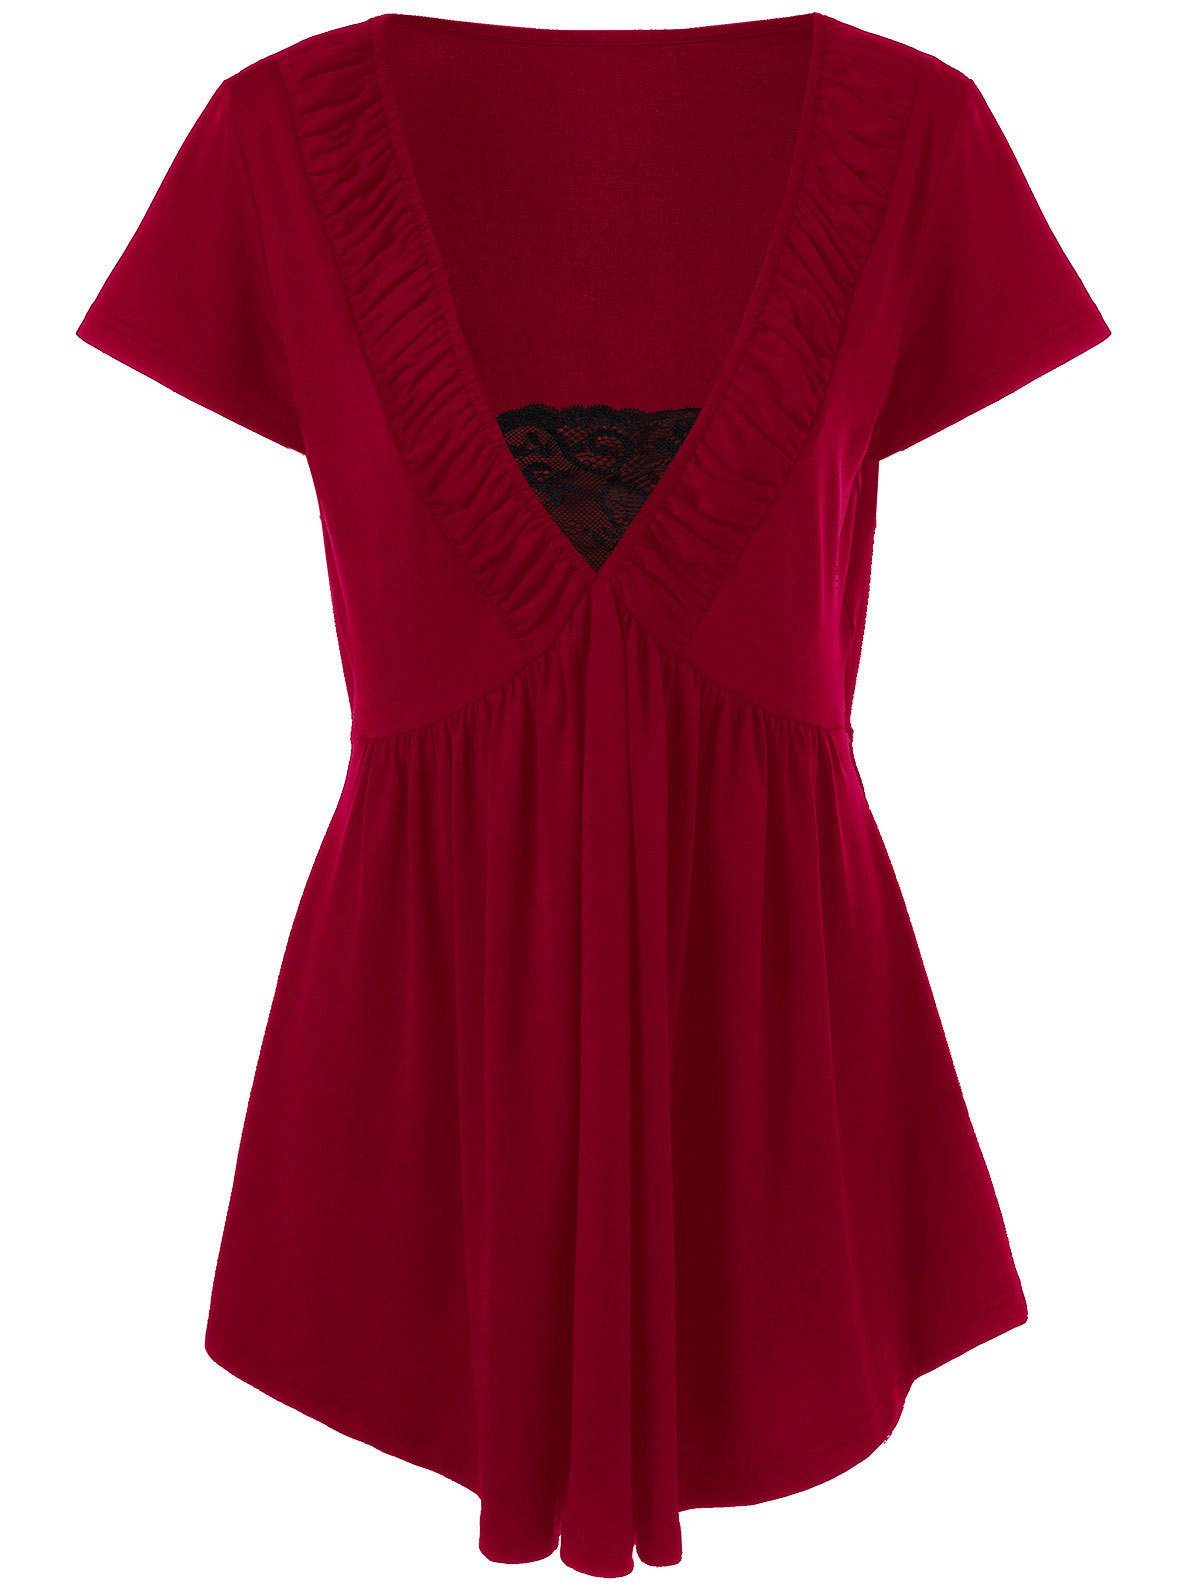 Plus size lace insert empire waist t shirt red xl in for Empire waist t shirt dress